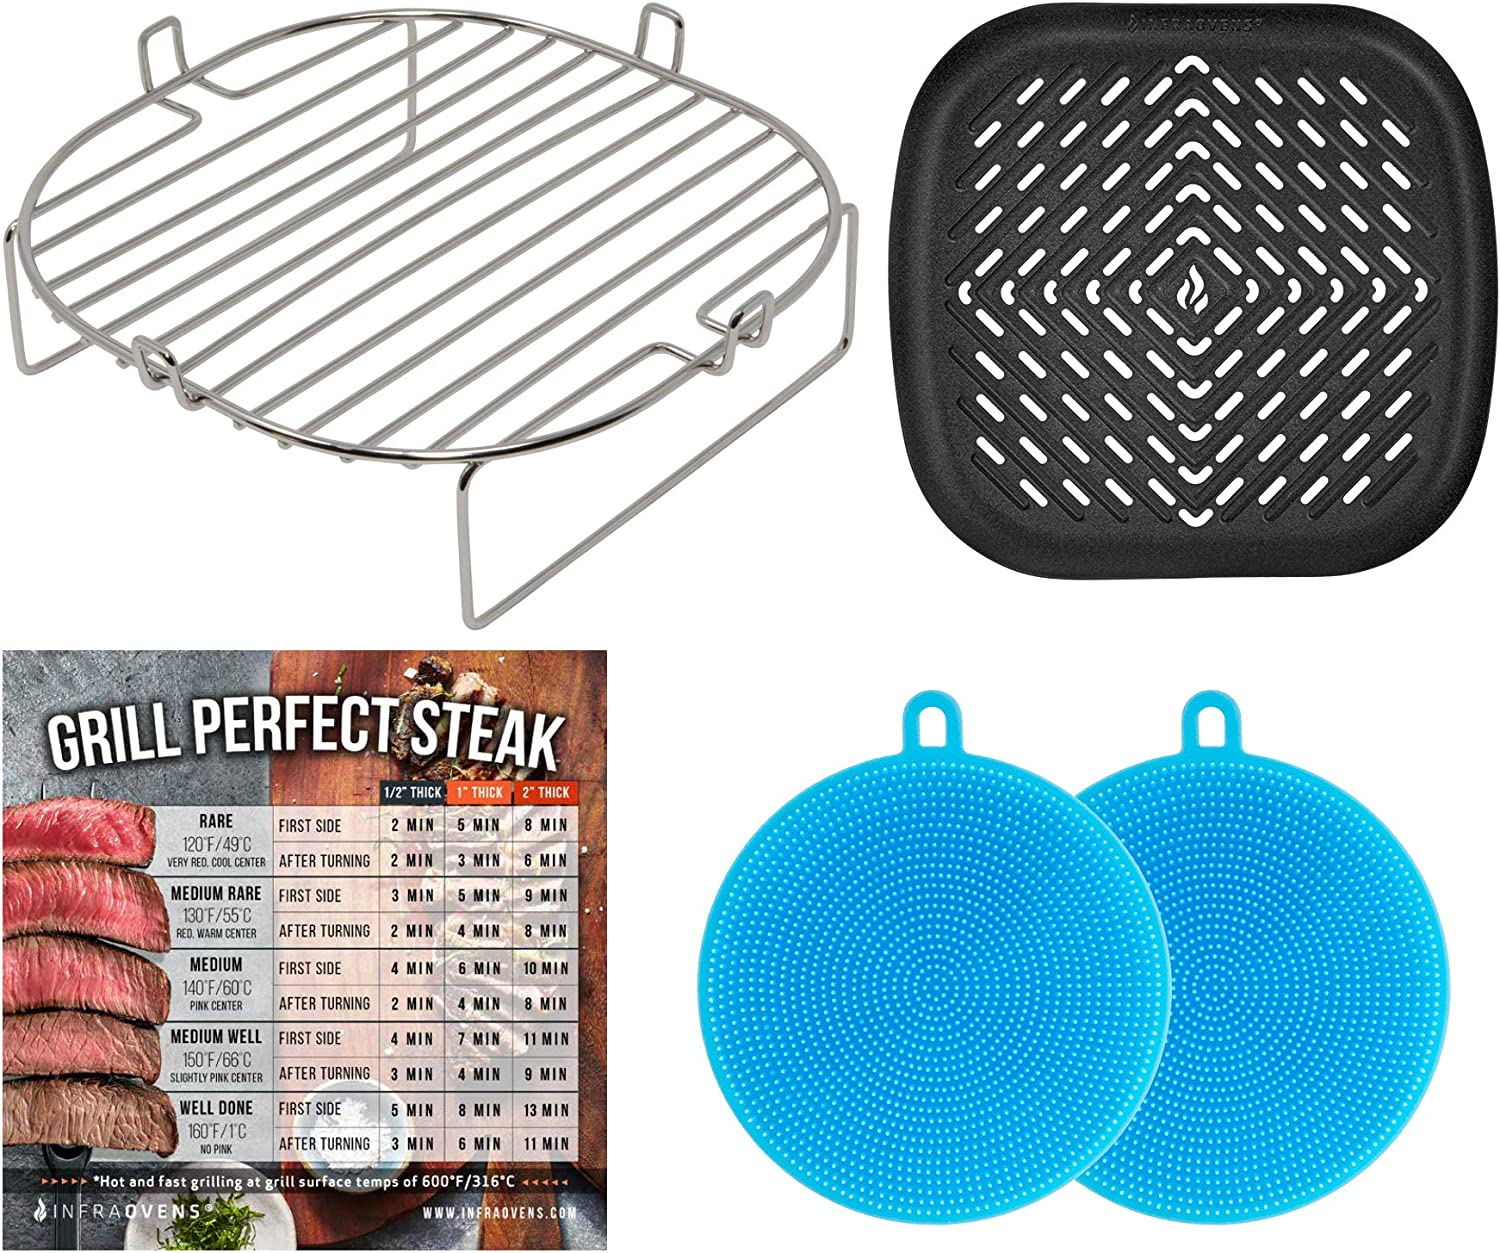 Air Fryer Rack & Pan Compatible with Ninja Foodi Grill, Cosori, Cuisinart, Dash, Power Airfryer Oven, Chefman, NuWave, Gourmia, Instant Pot Vortex, Costway, Emeril Lagasse, Geek Chef, Caynel +More